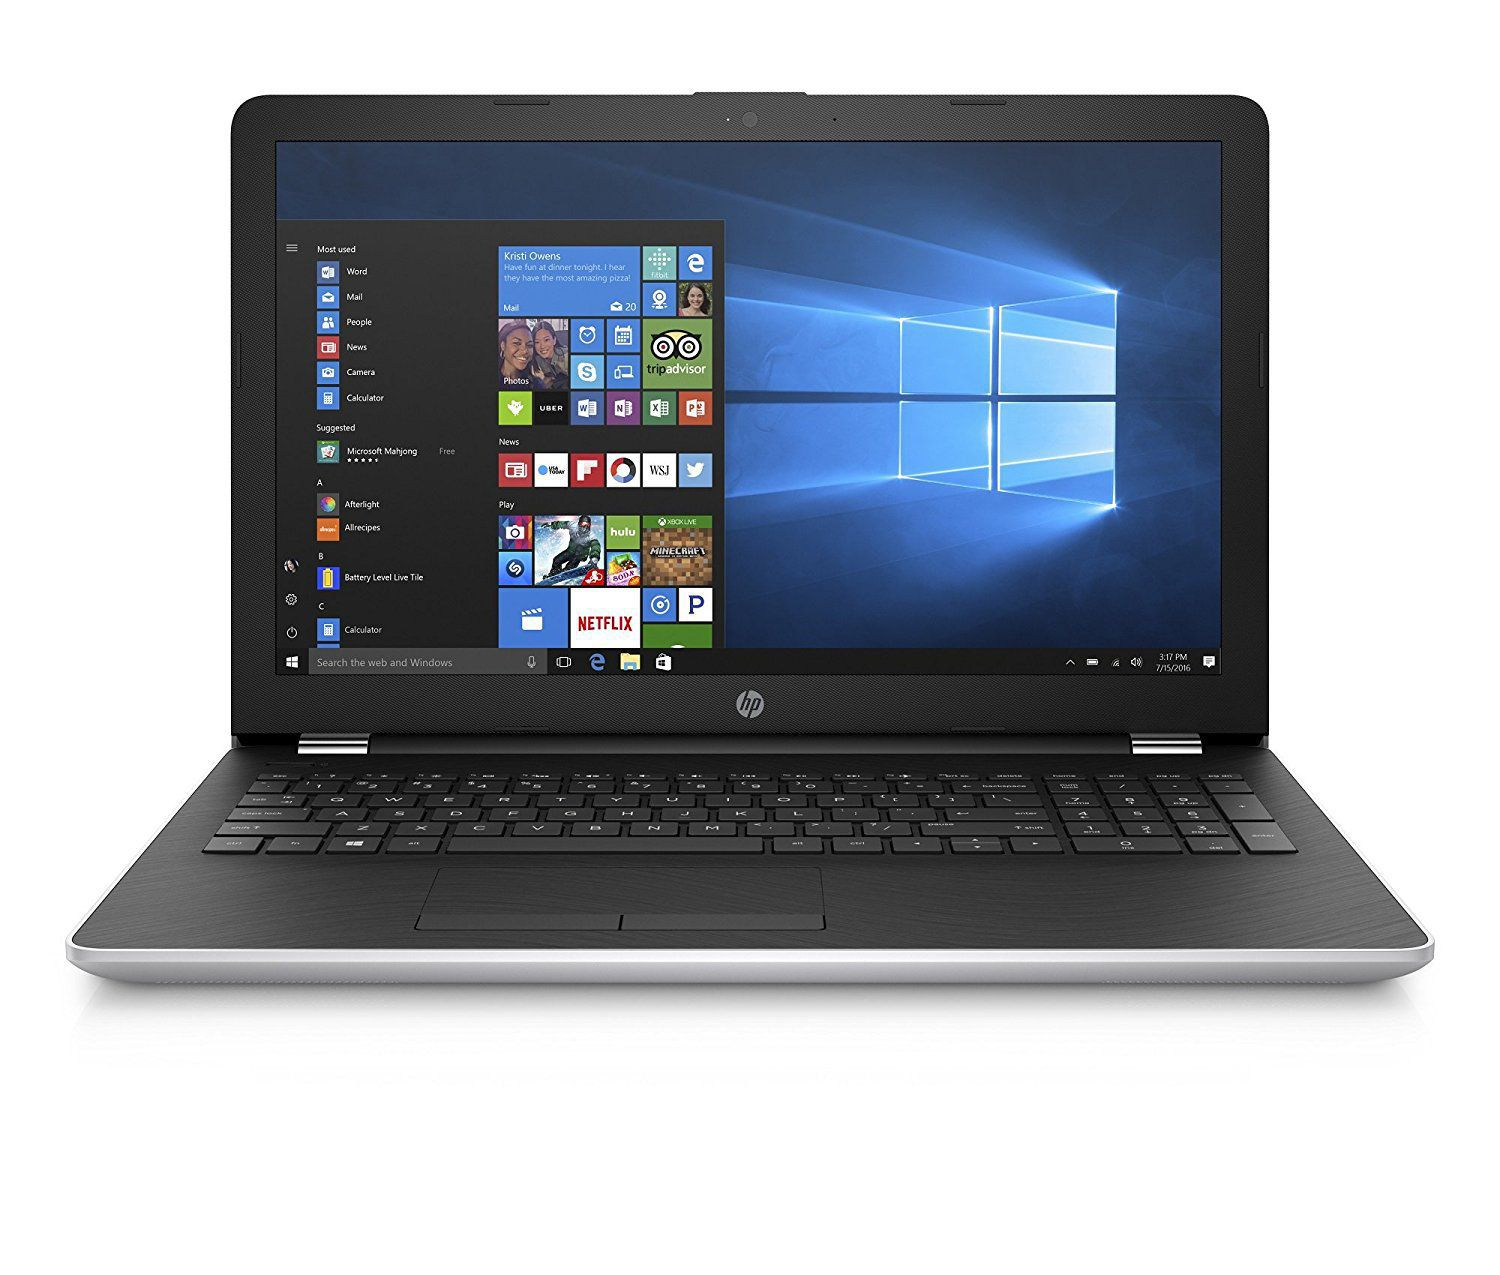 HP 15 BS670TX Notebook Core i3 (6th Generation) 4 GB 39.62cm(15.6) Windows 10 Home without MS Office Integrated Graphics SILVER